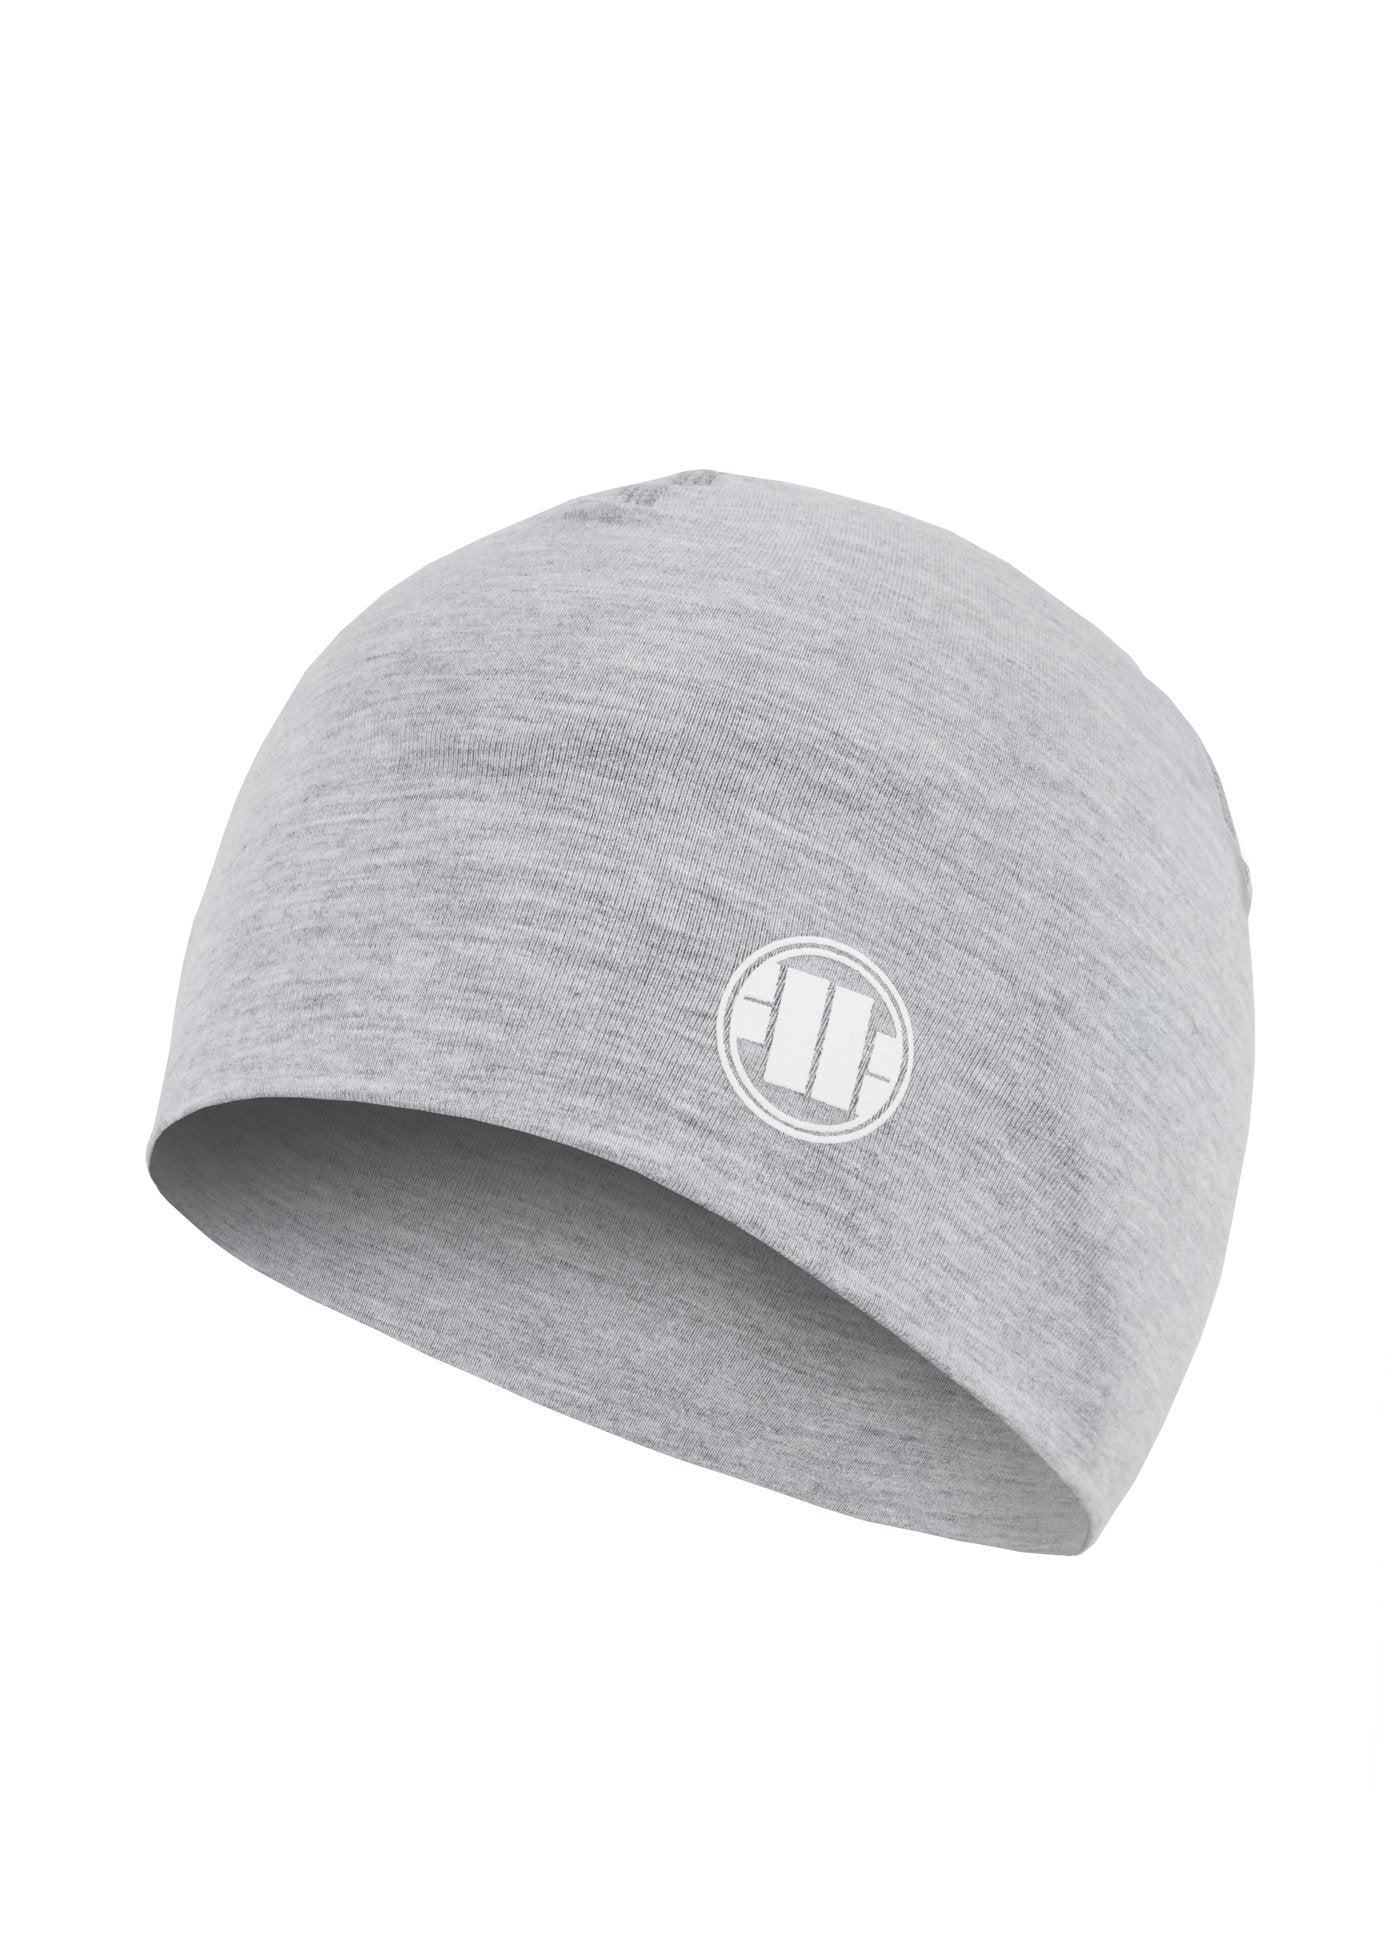 Compression Beanie SMALL LOGO Grey - Pitbull West Coast U.S.A.